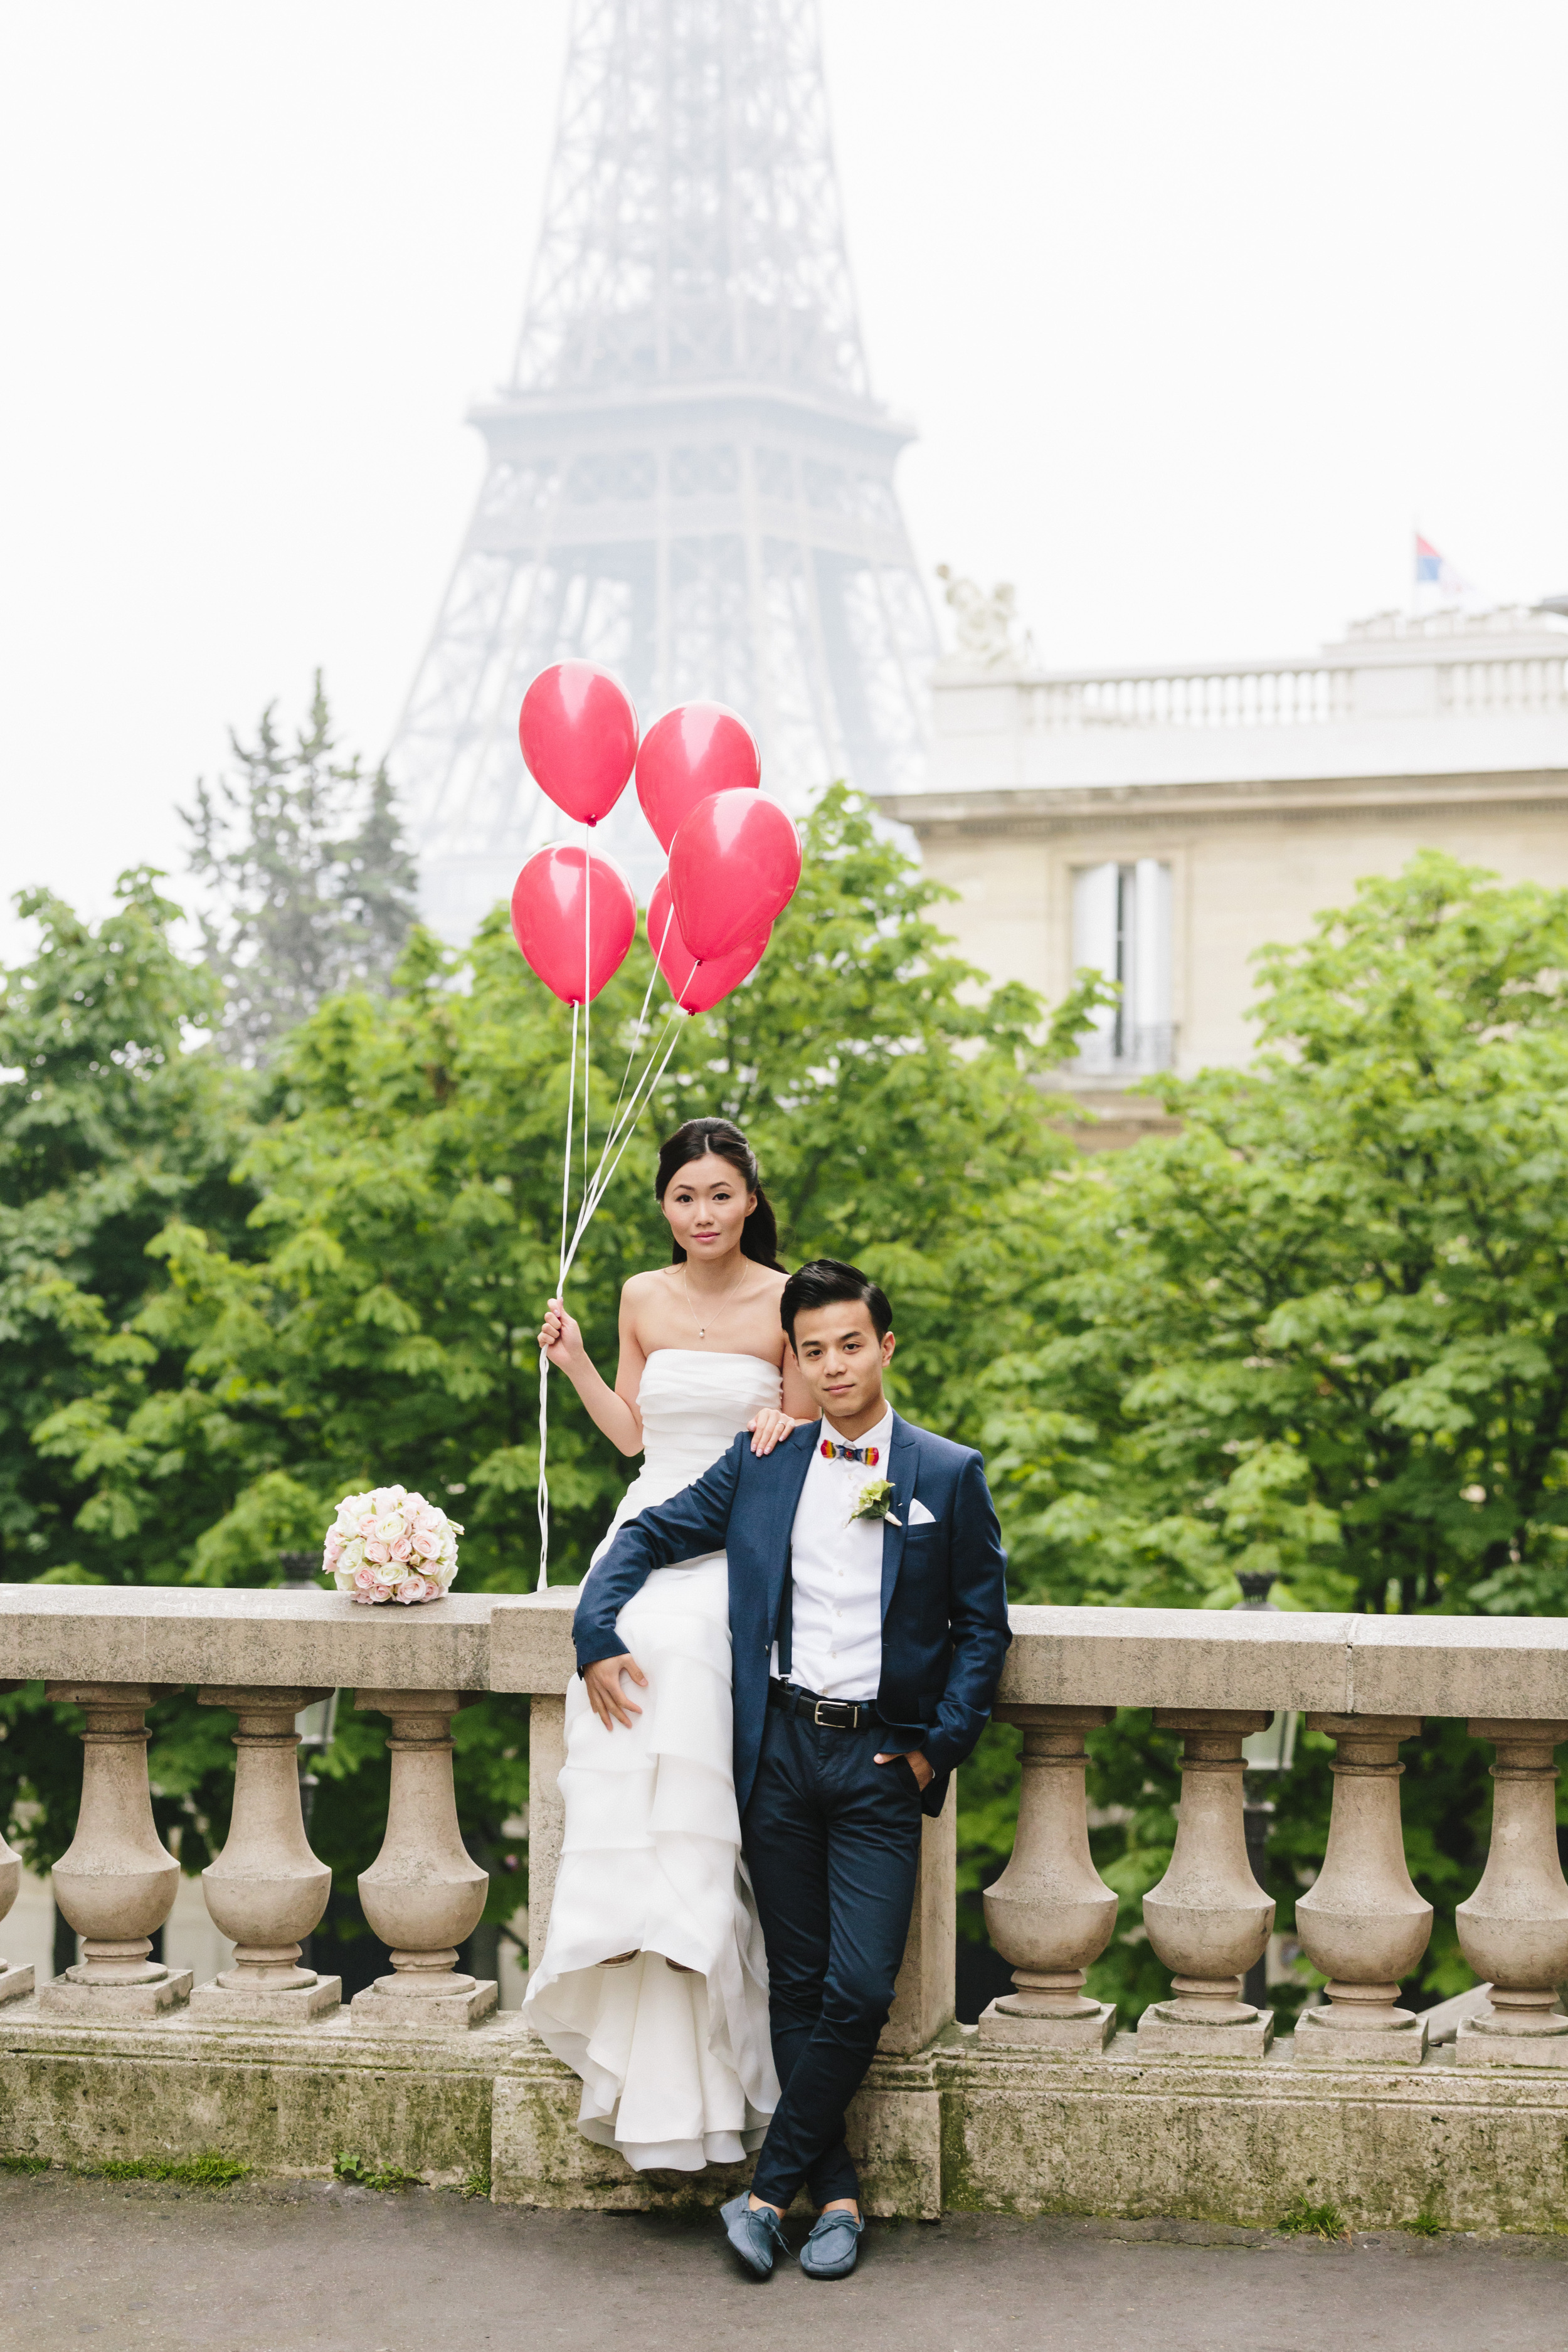 paris photographer pre-wedding couple session at passy by eiffel tower with red balloons